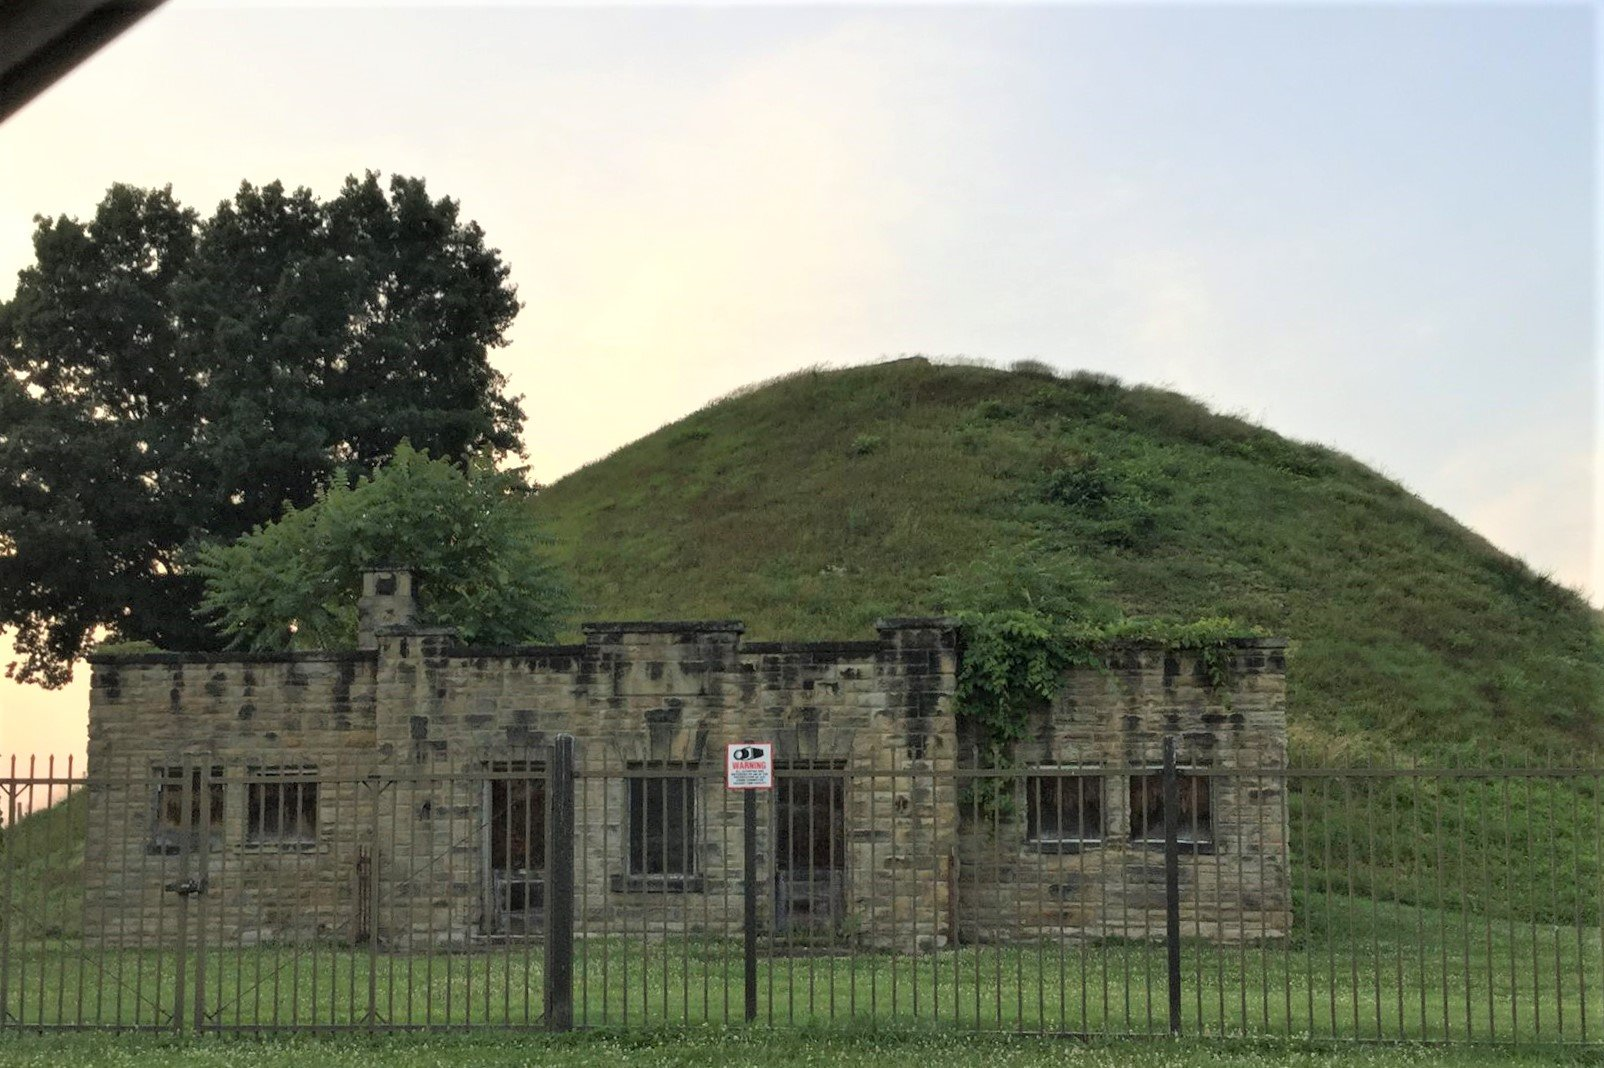 South side of the mound with the remains of the original museum.